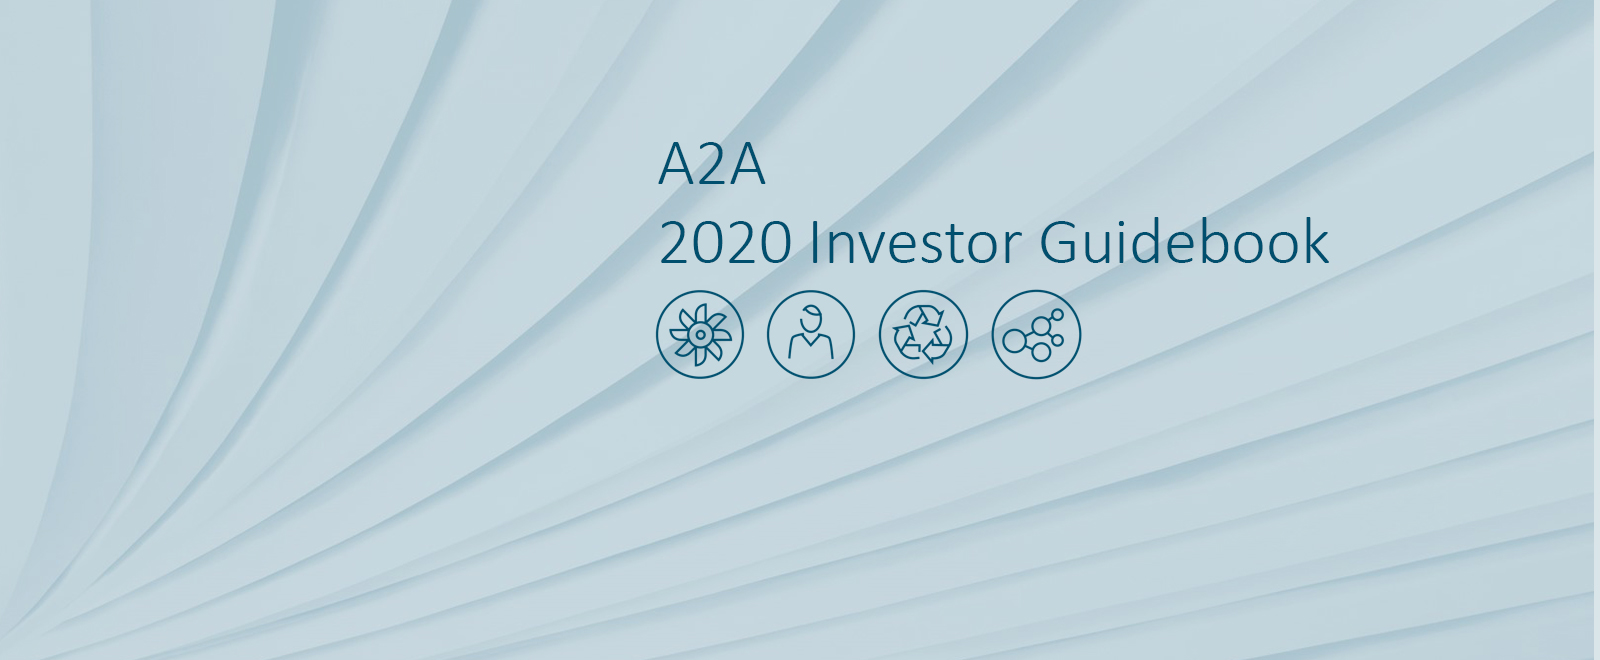 A2A 2020 INVESTOR GUIDEBOOK – NOW ON LINE